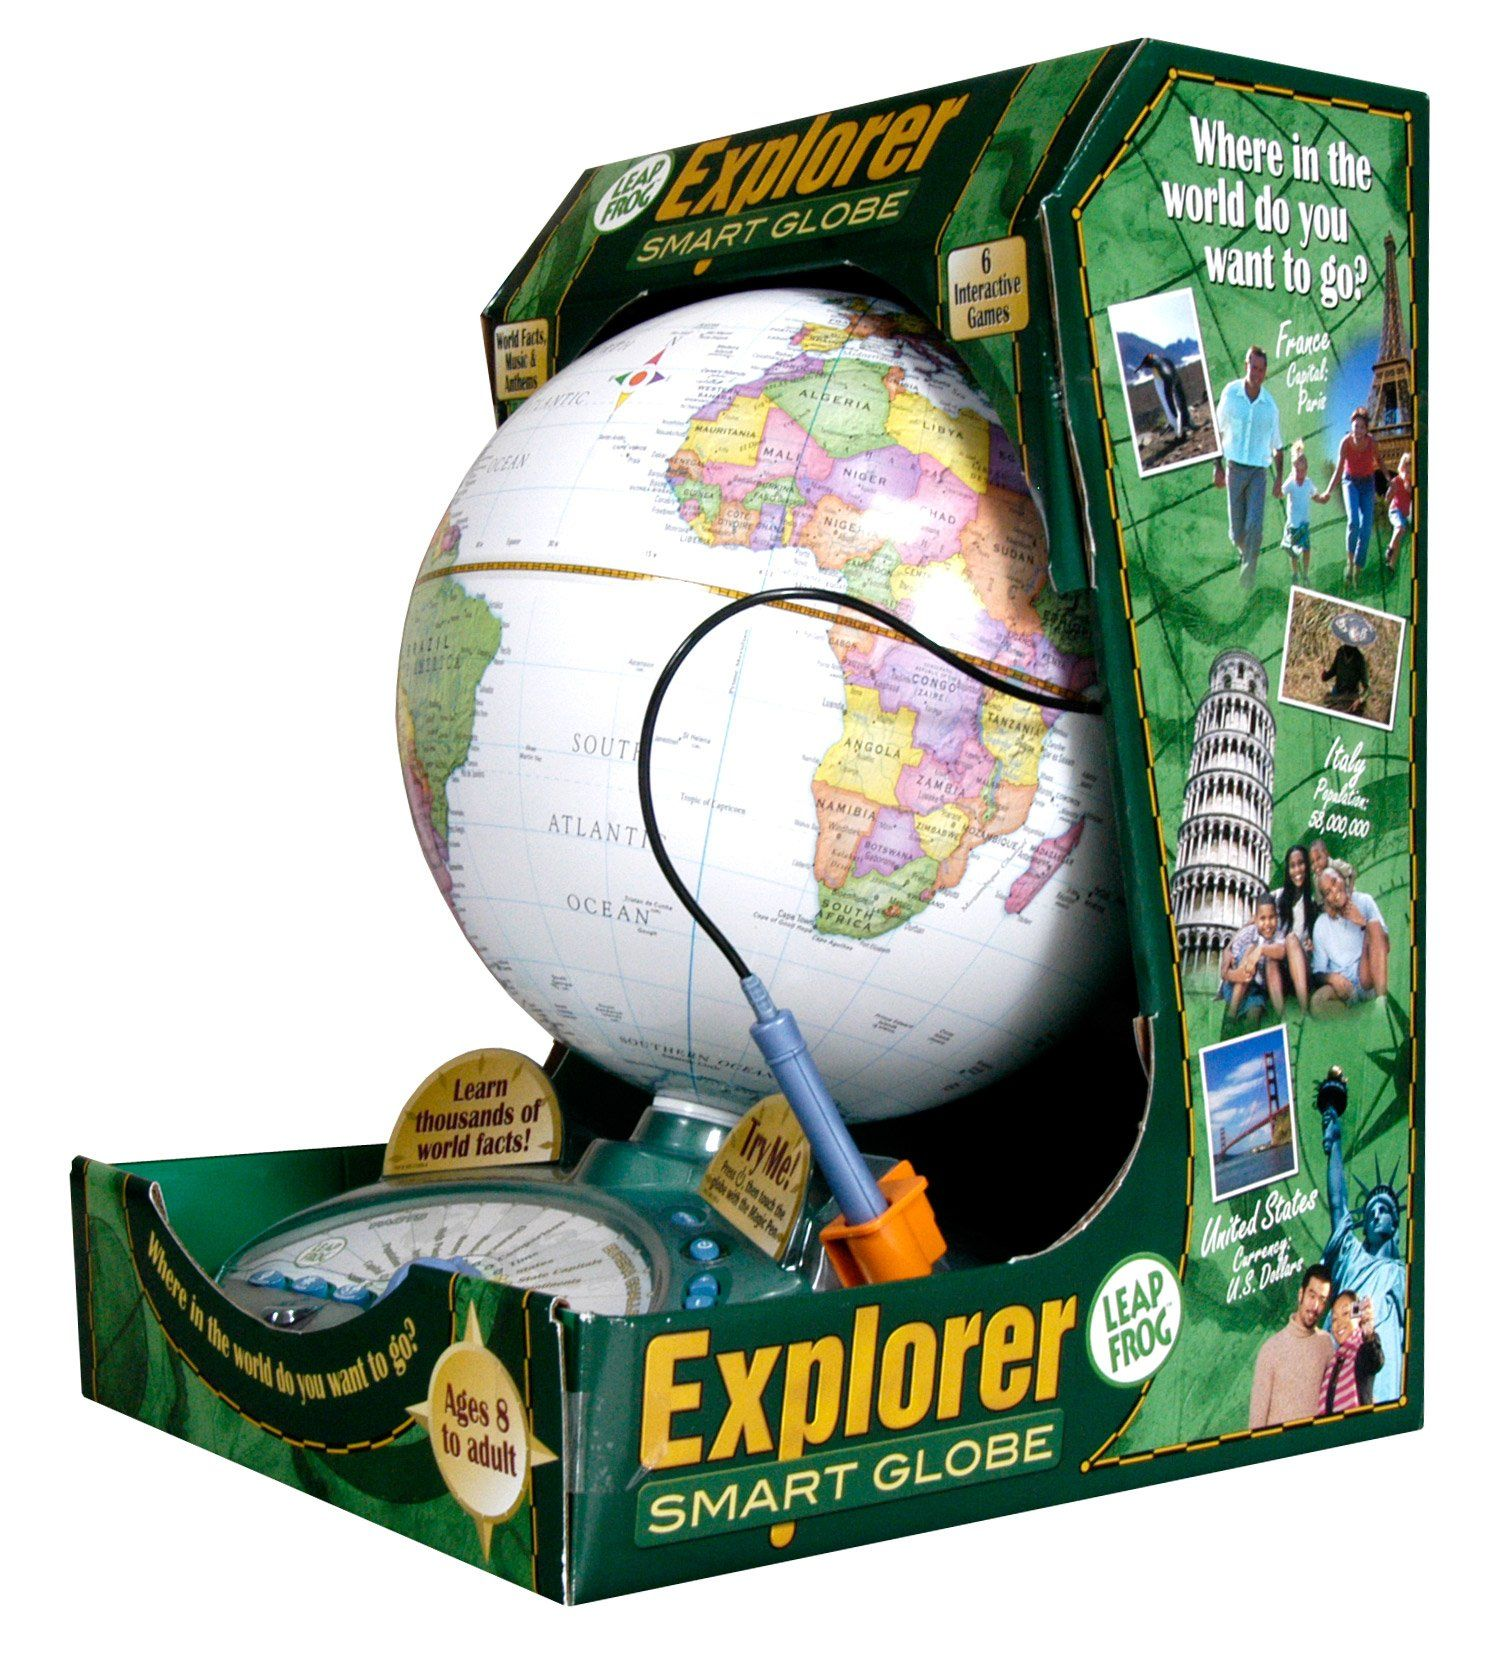 Amazon leapfrog explorer smart globe toys games globes amazon leapfrog explorer smart globe toys games gumiabroncs Image collections